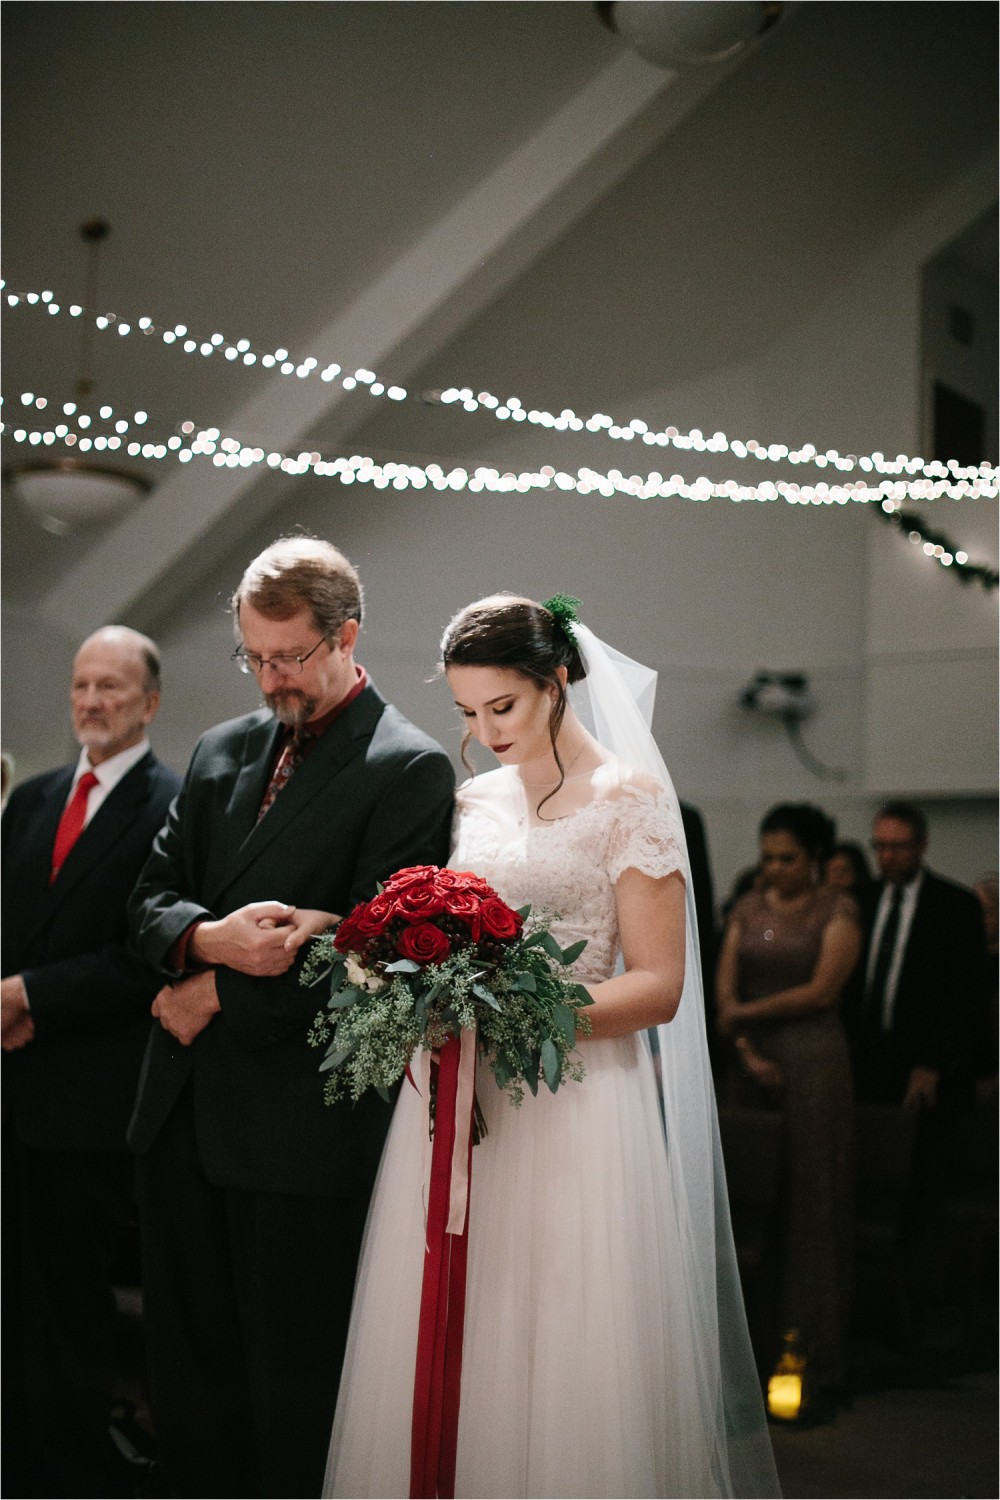 Alaina + Josh __ a wintertime wedding in Houston, TX with Christmas accents and a BHLDN dress by North Texas Wedding Photographer Rachel Meagan Photography _ 35